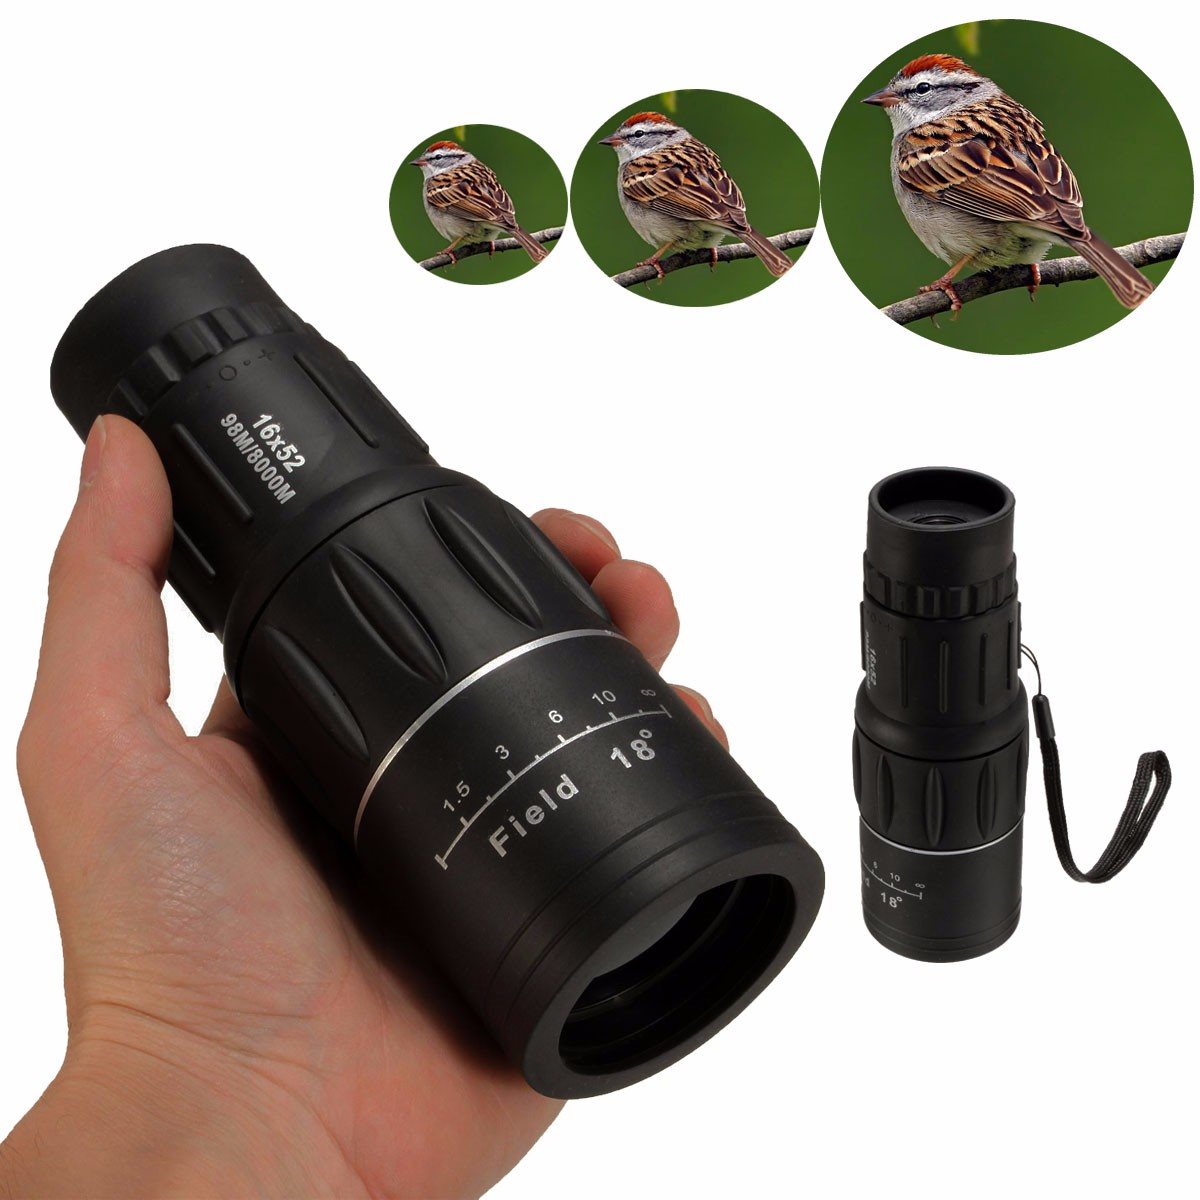 16x52 Dual Focus HD Optics Zoom Handheld Monocular Telescope Waterproof Day For Camping Hunting Hiking Bird Watching Sightseeing Sports Events Concerts